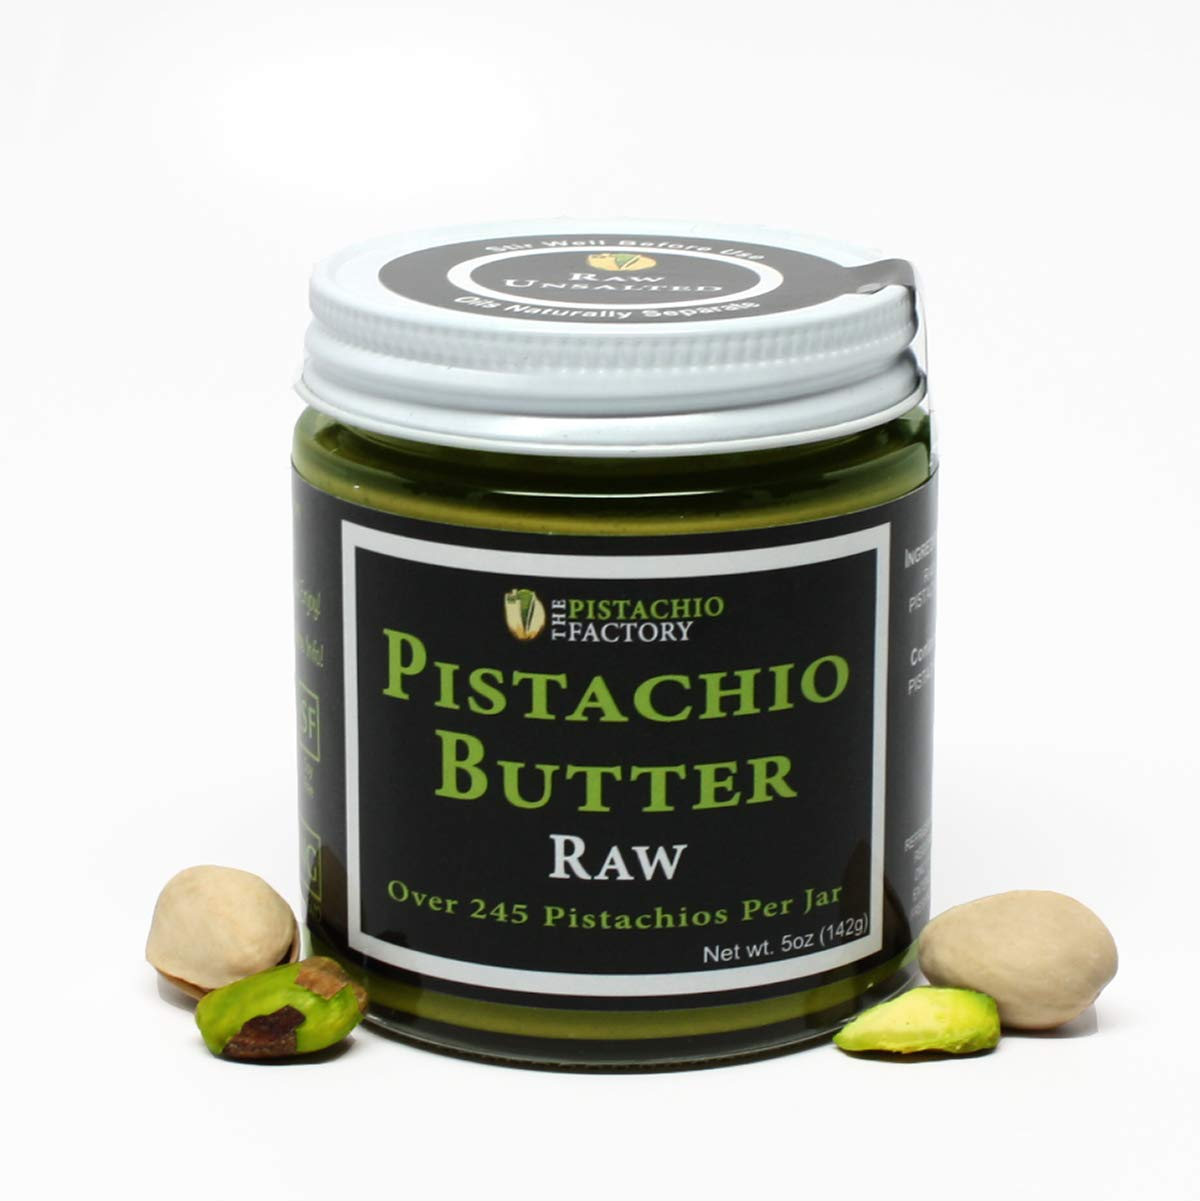 Pistachio Butter - Raw Unsalted by The Pistachio Factory